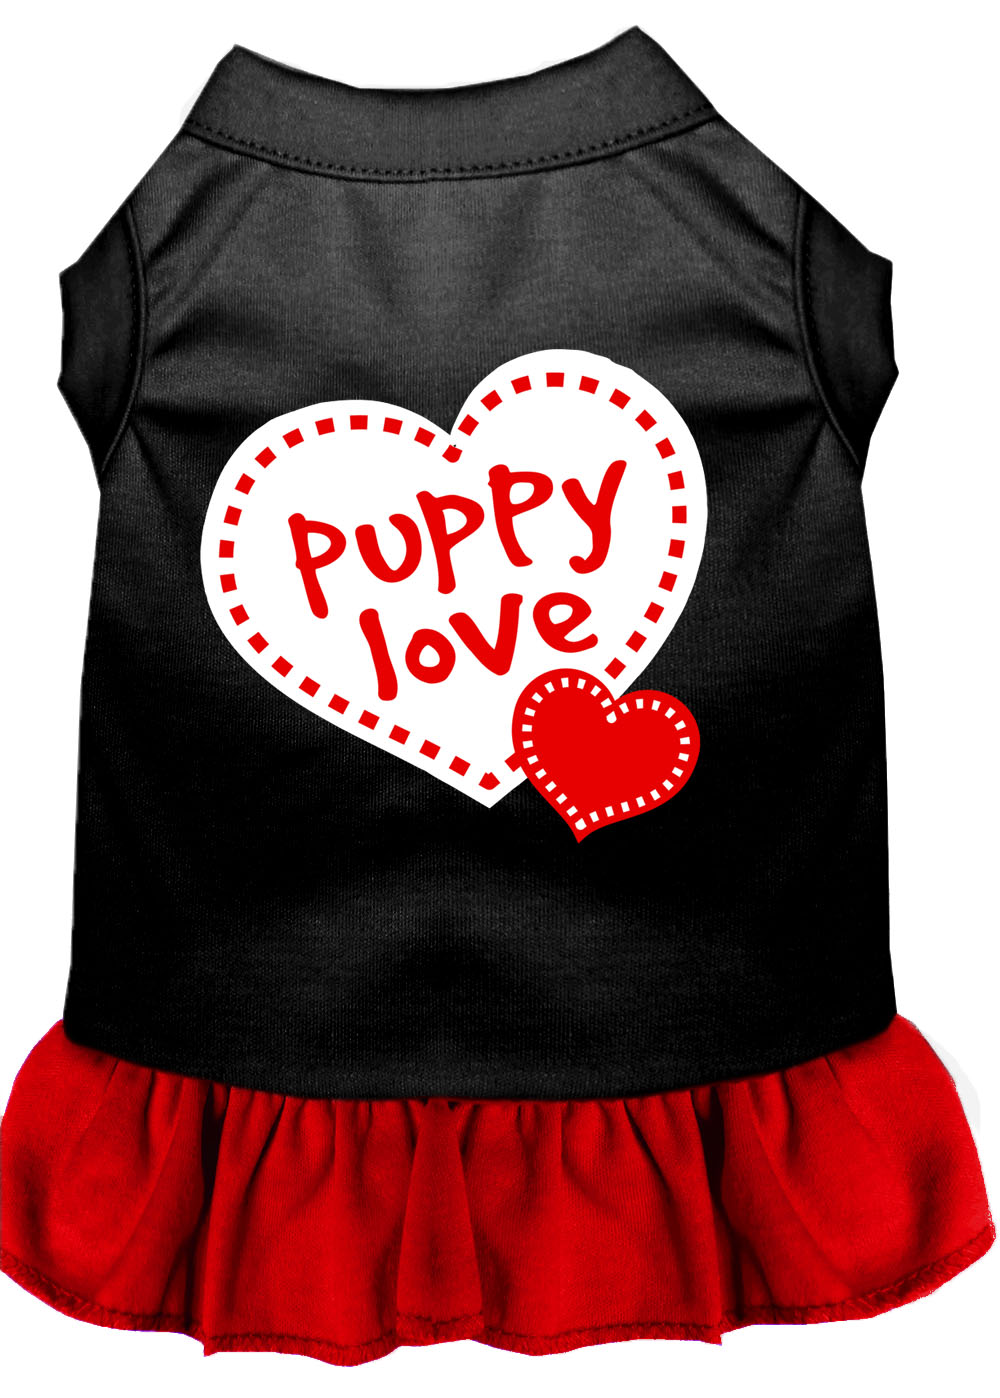 Puppy Love Dresses Black With Red